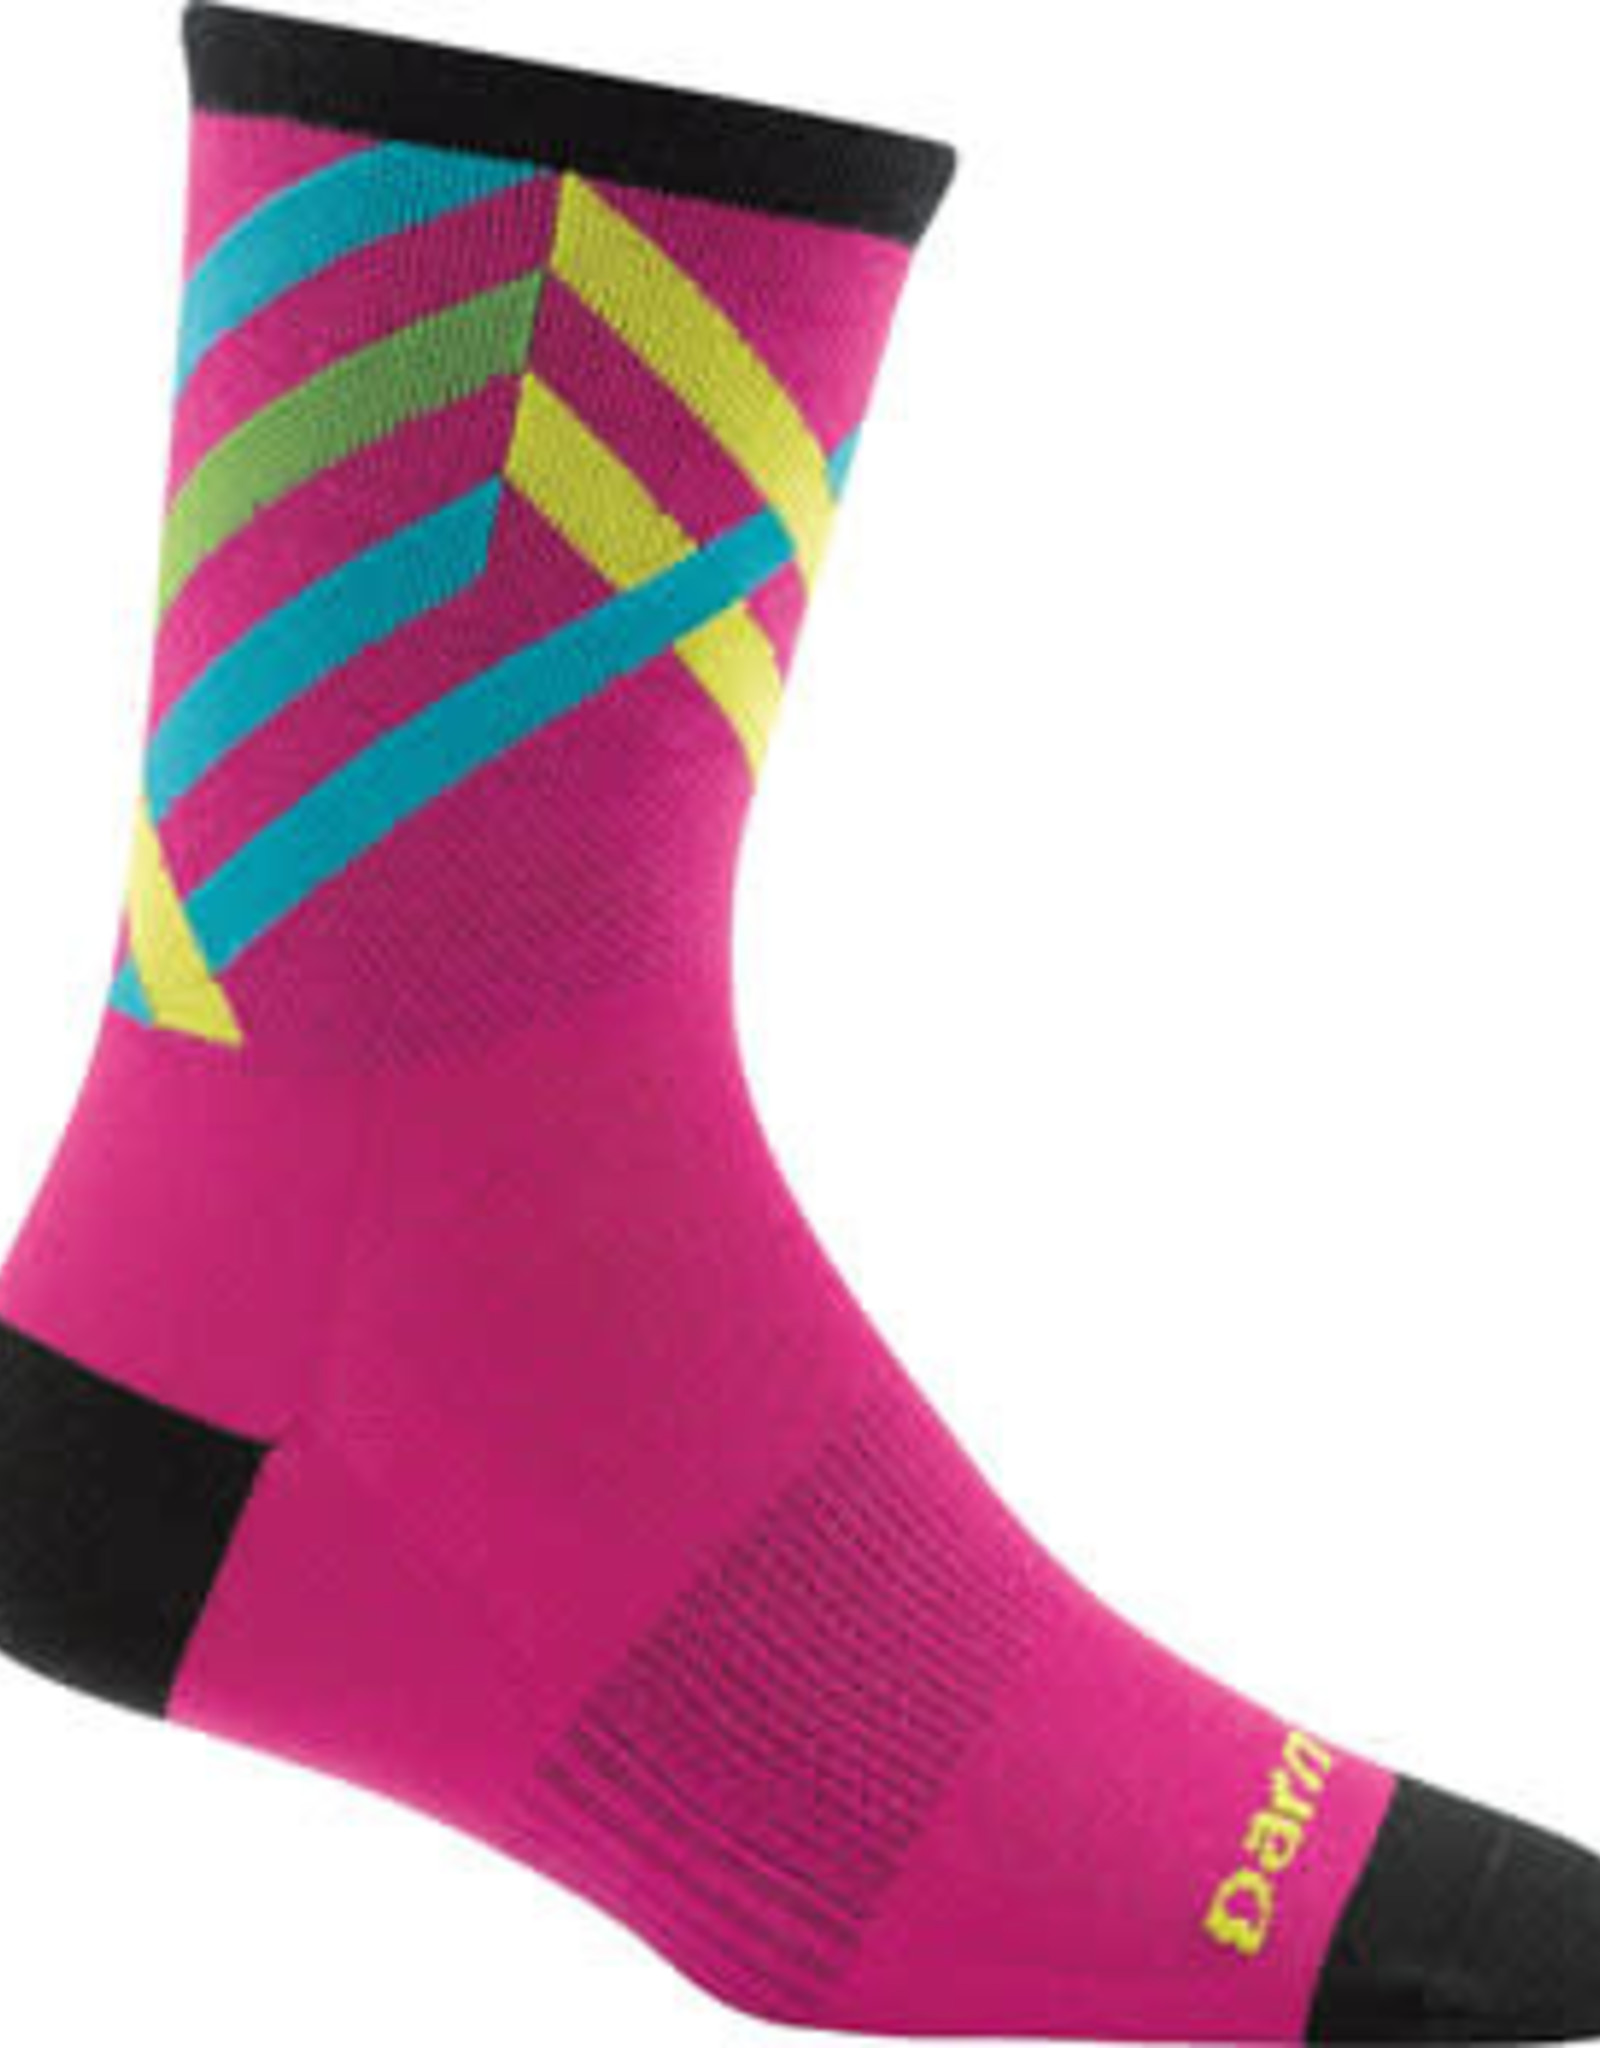 Darn Tough Vermont Darn Tough Vermont Graphic Stripe Micro Crew Ultra Light Socks - 4 inch, Pink, Women's, Small